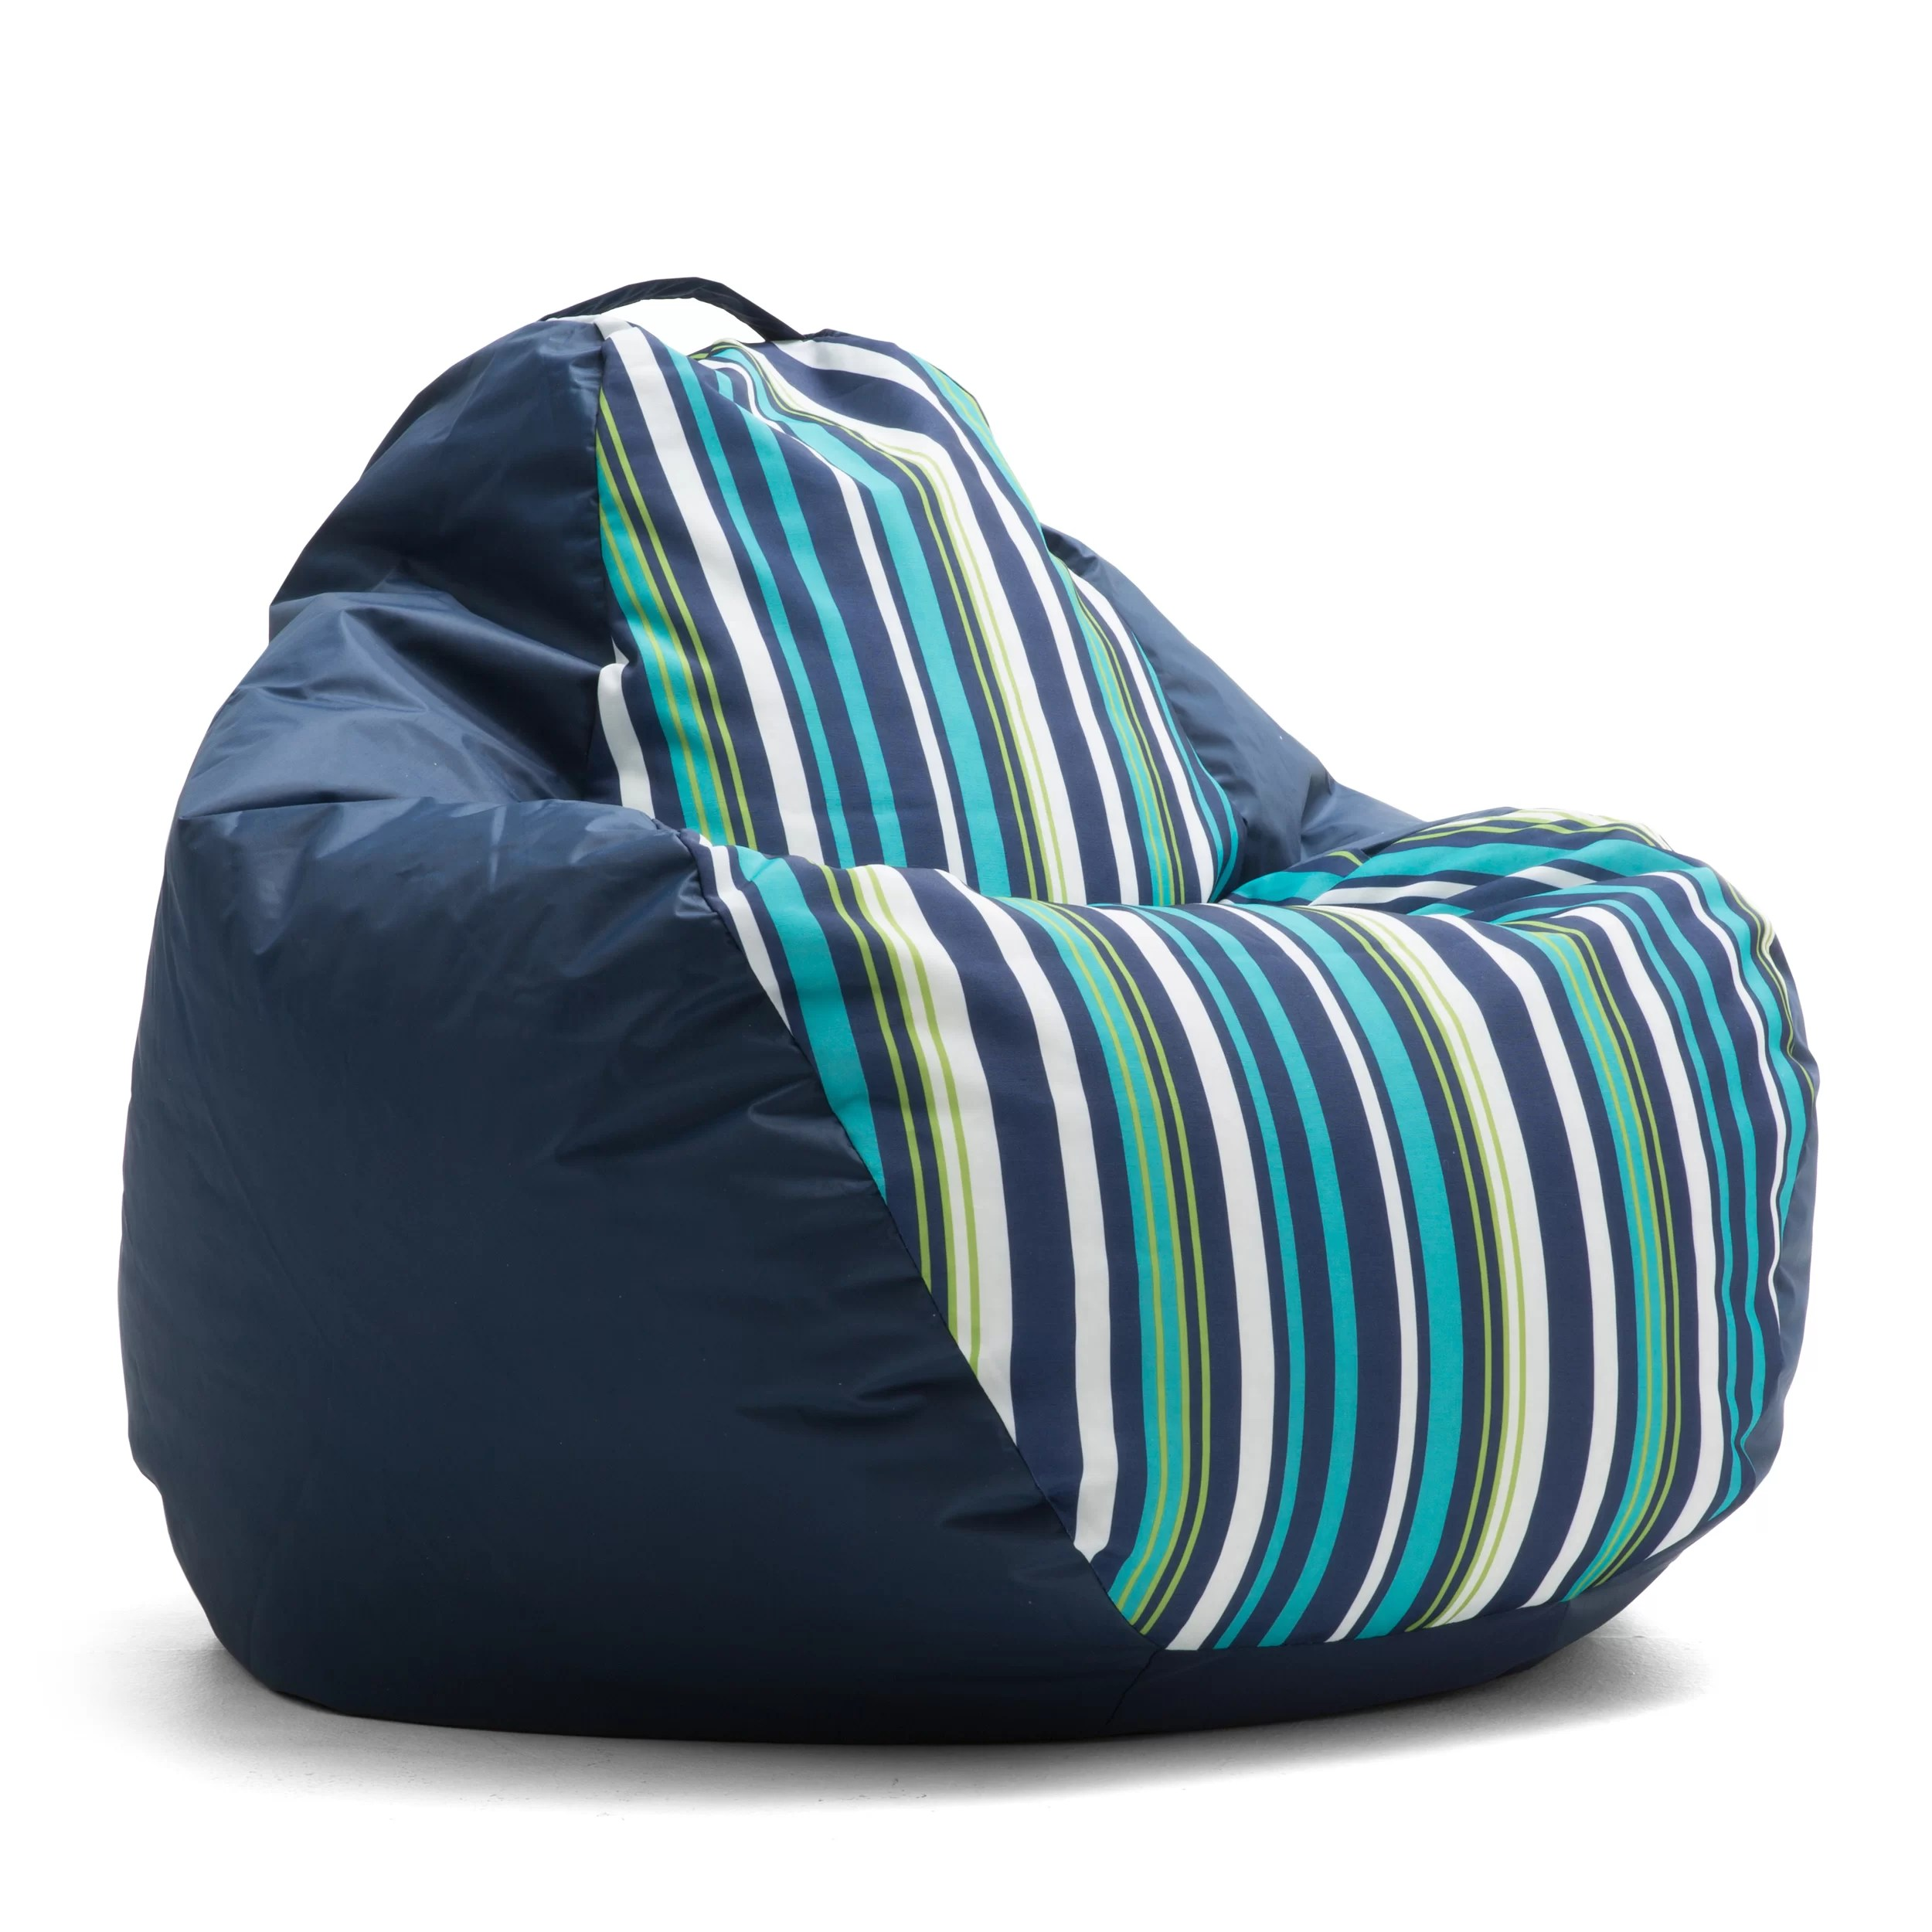 Outdoor Bean Bag Chairs Comfort Research Big Joe Outdoor Teardrop Cozumel Stripe